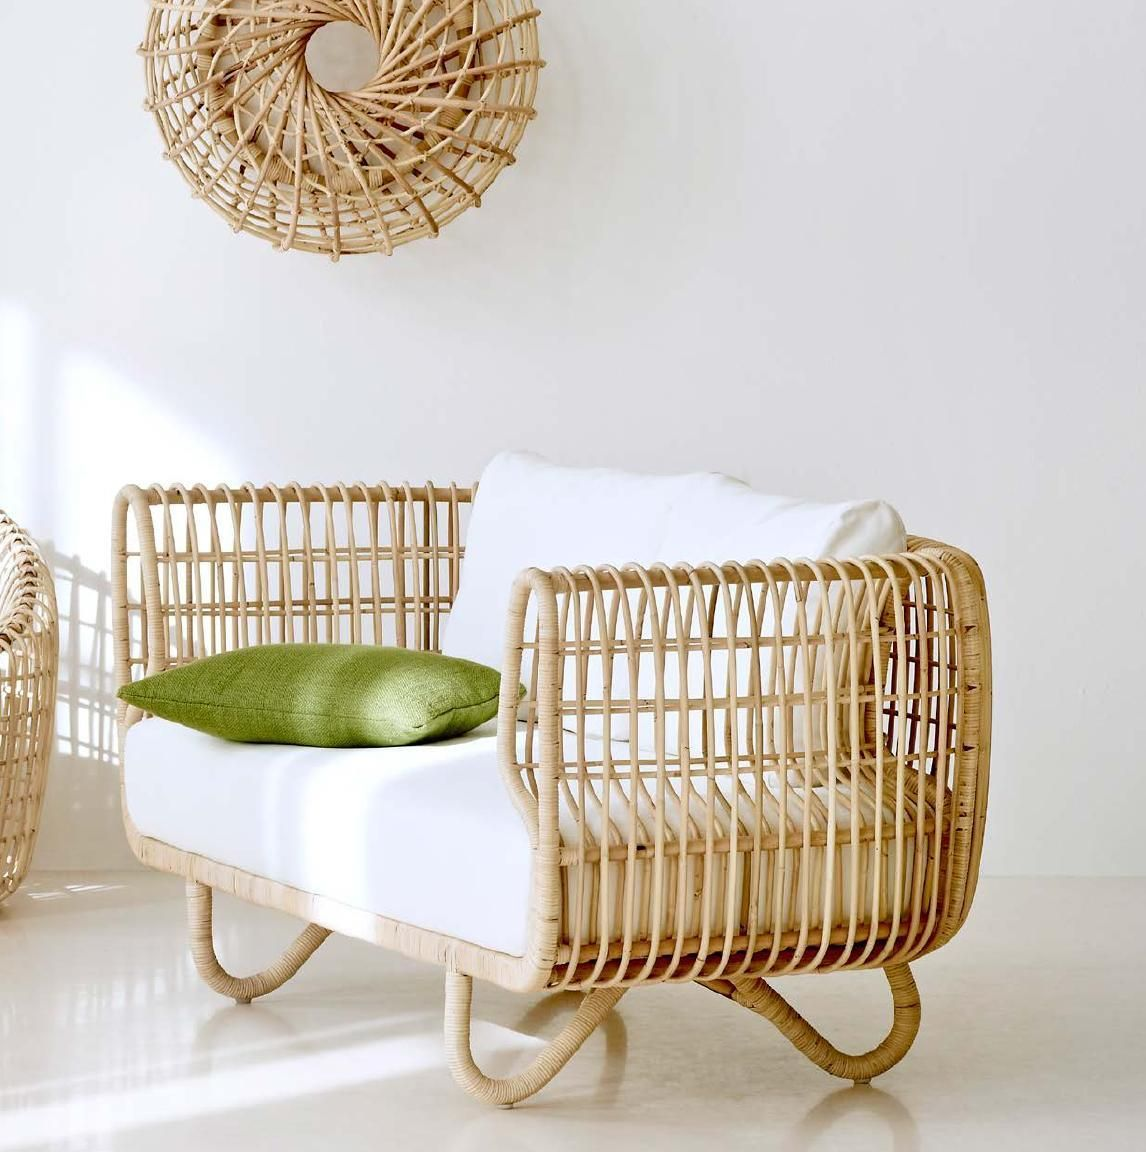 Rattan sofa & chair @Candace Renee Young-line #thingsmatter | Coast ...